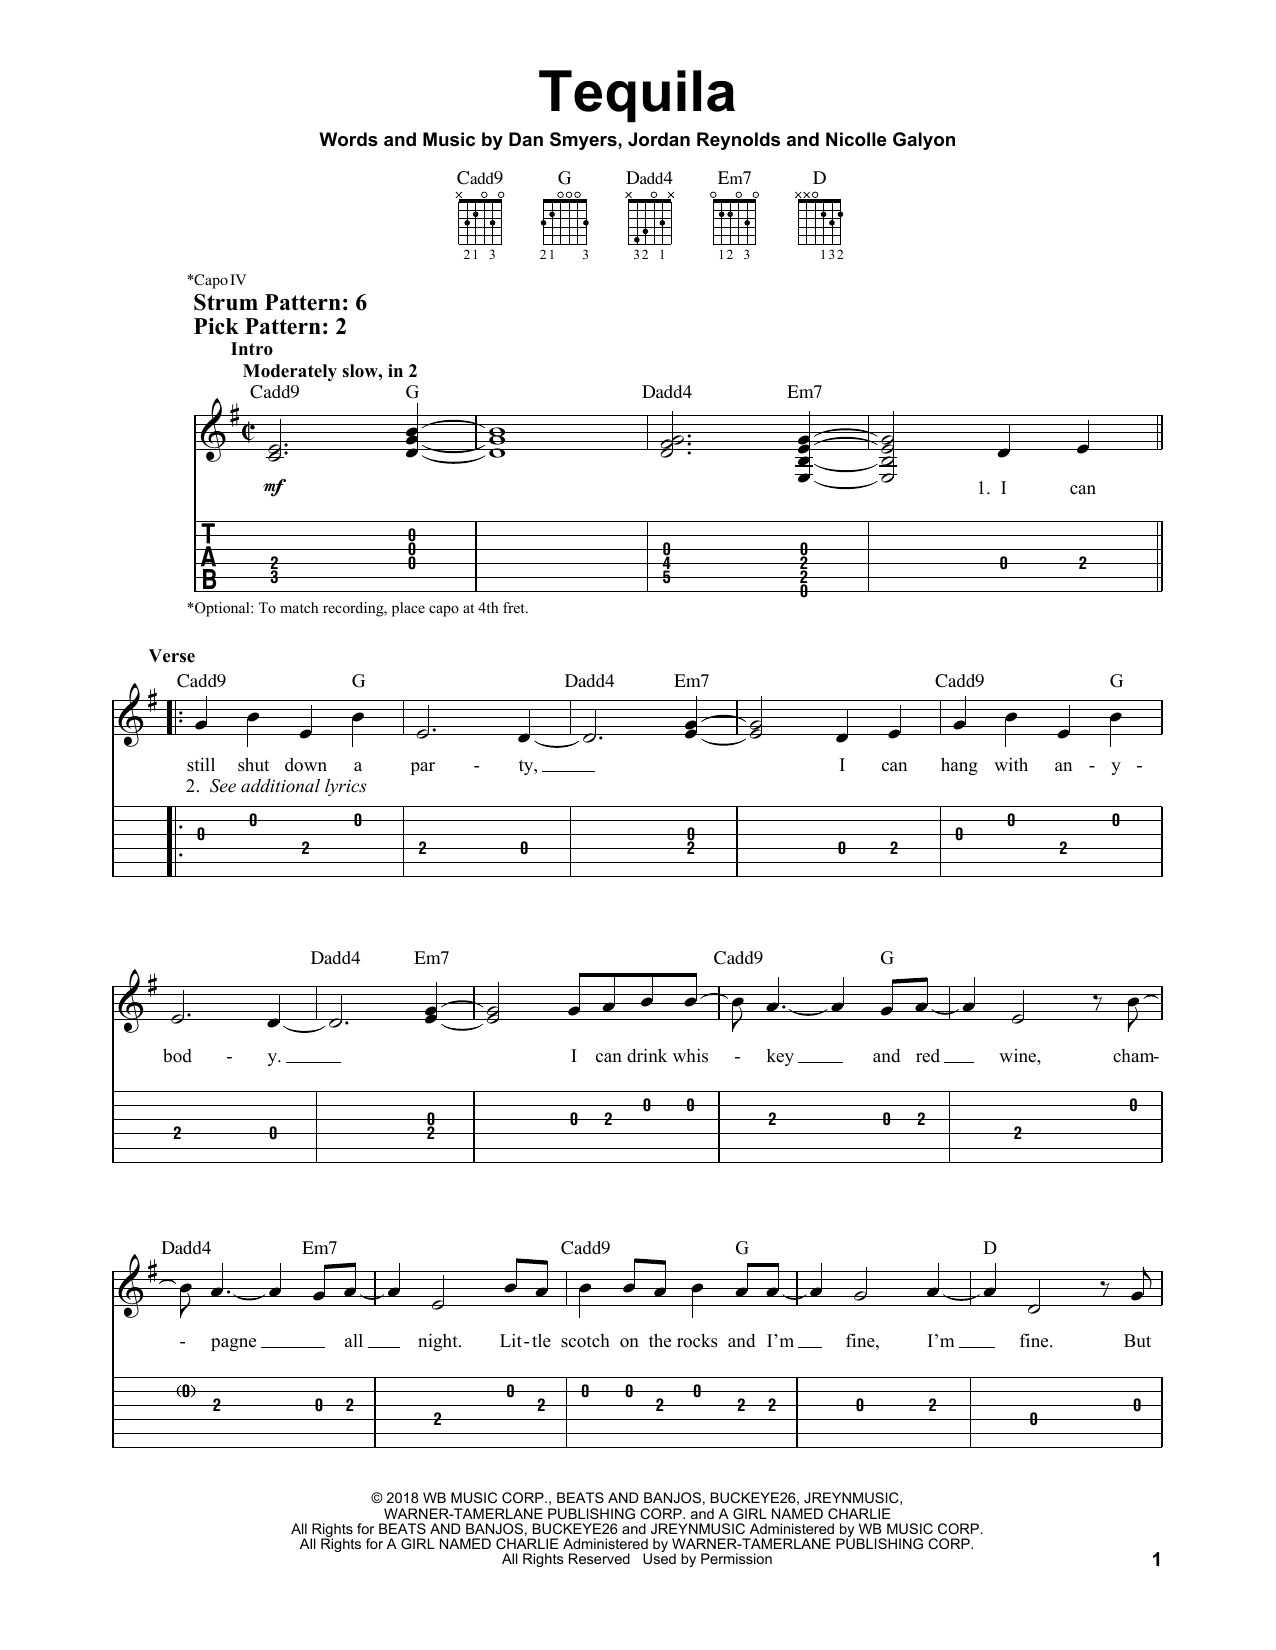 Tequila Print Sheet Music Now